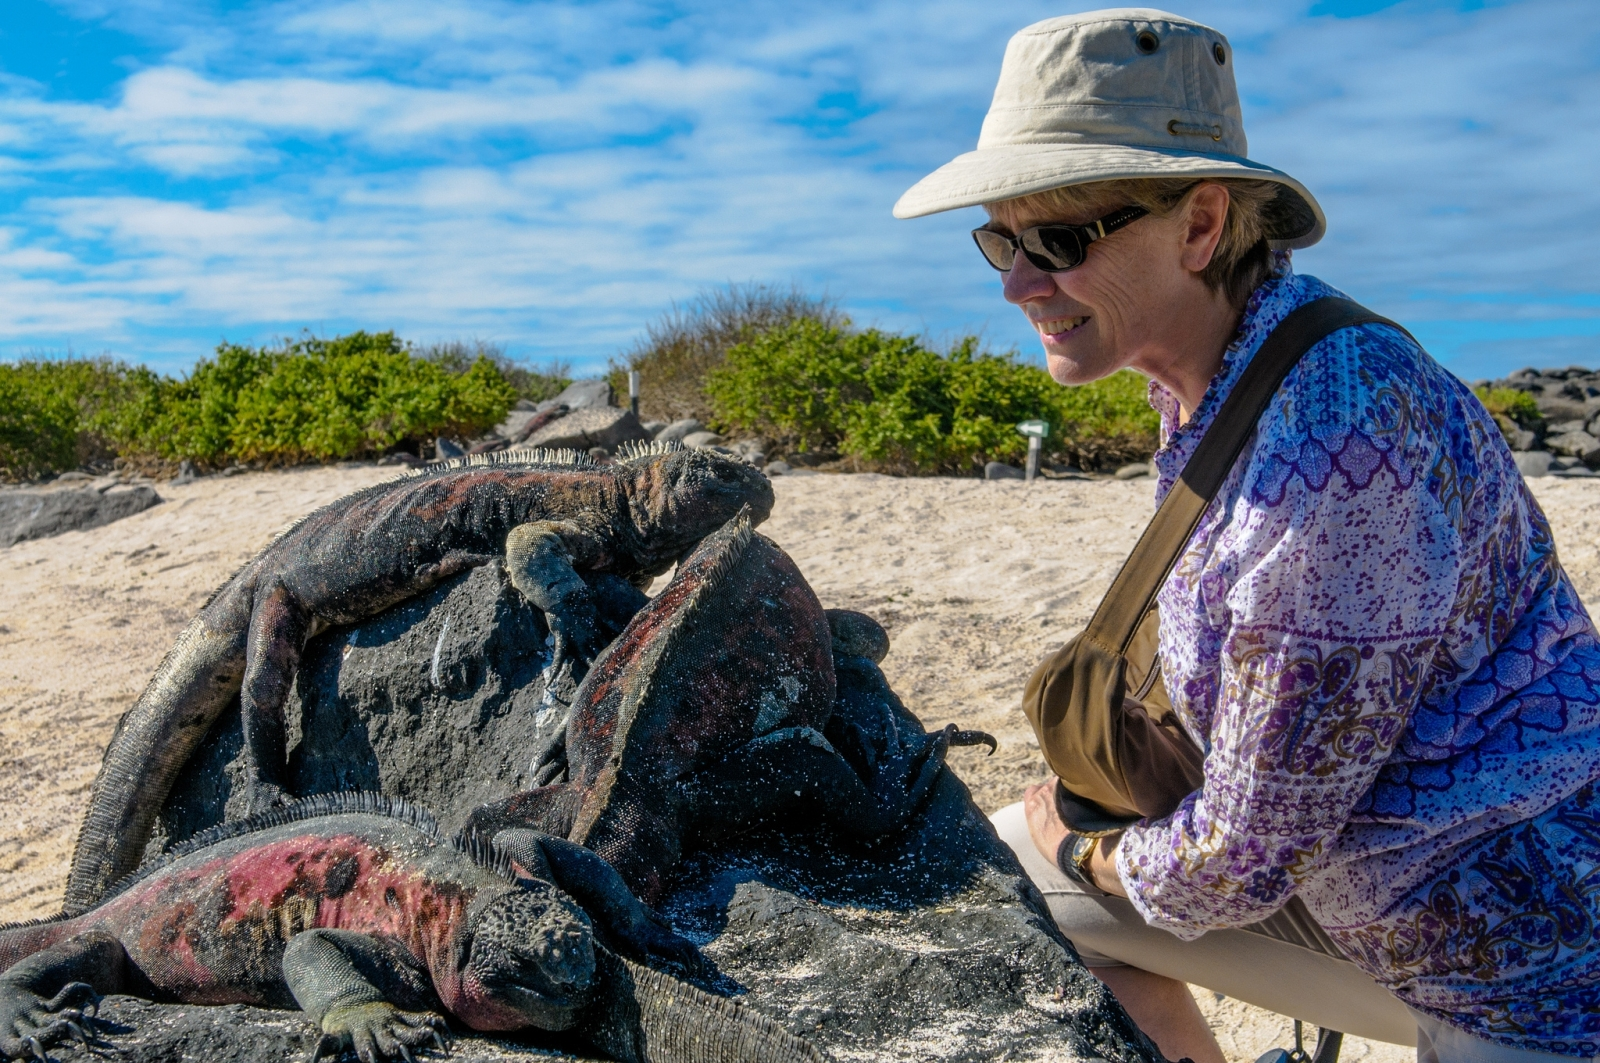 Galapagos Sea Star Journey Guest Meeting With Guana Lizards